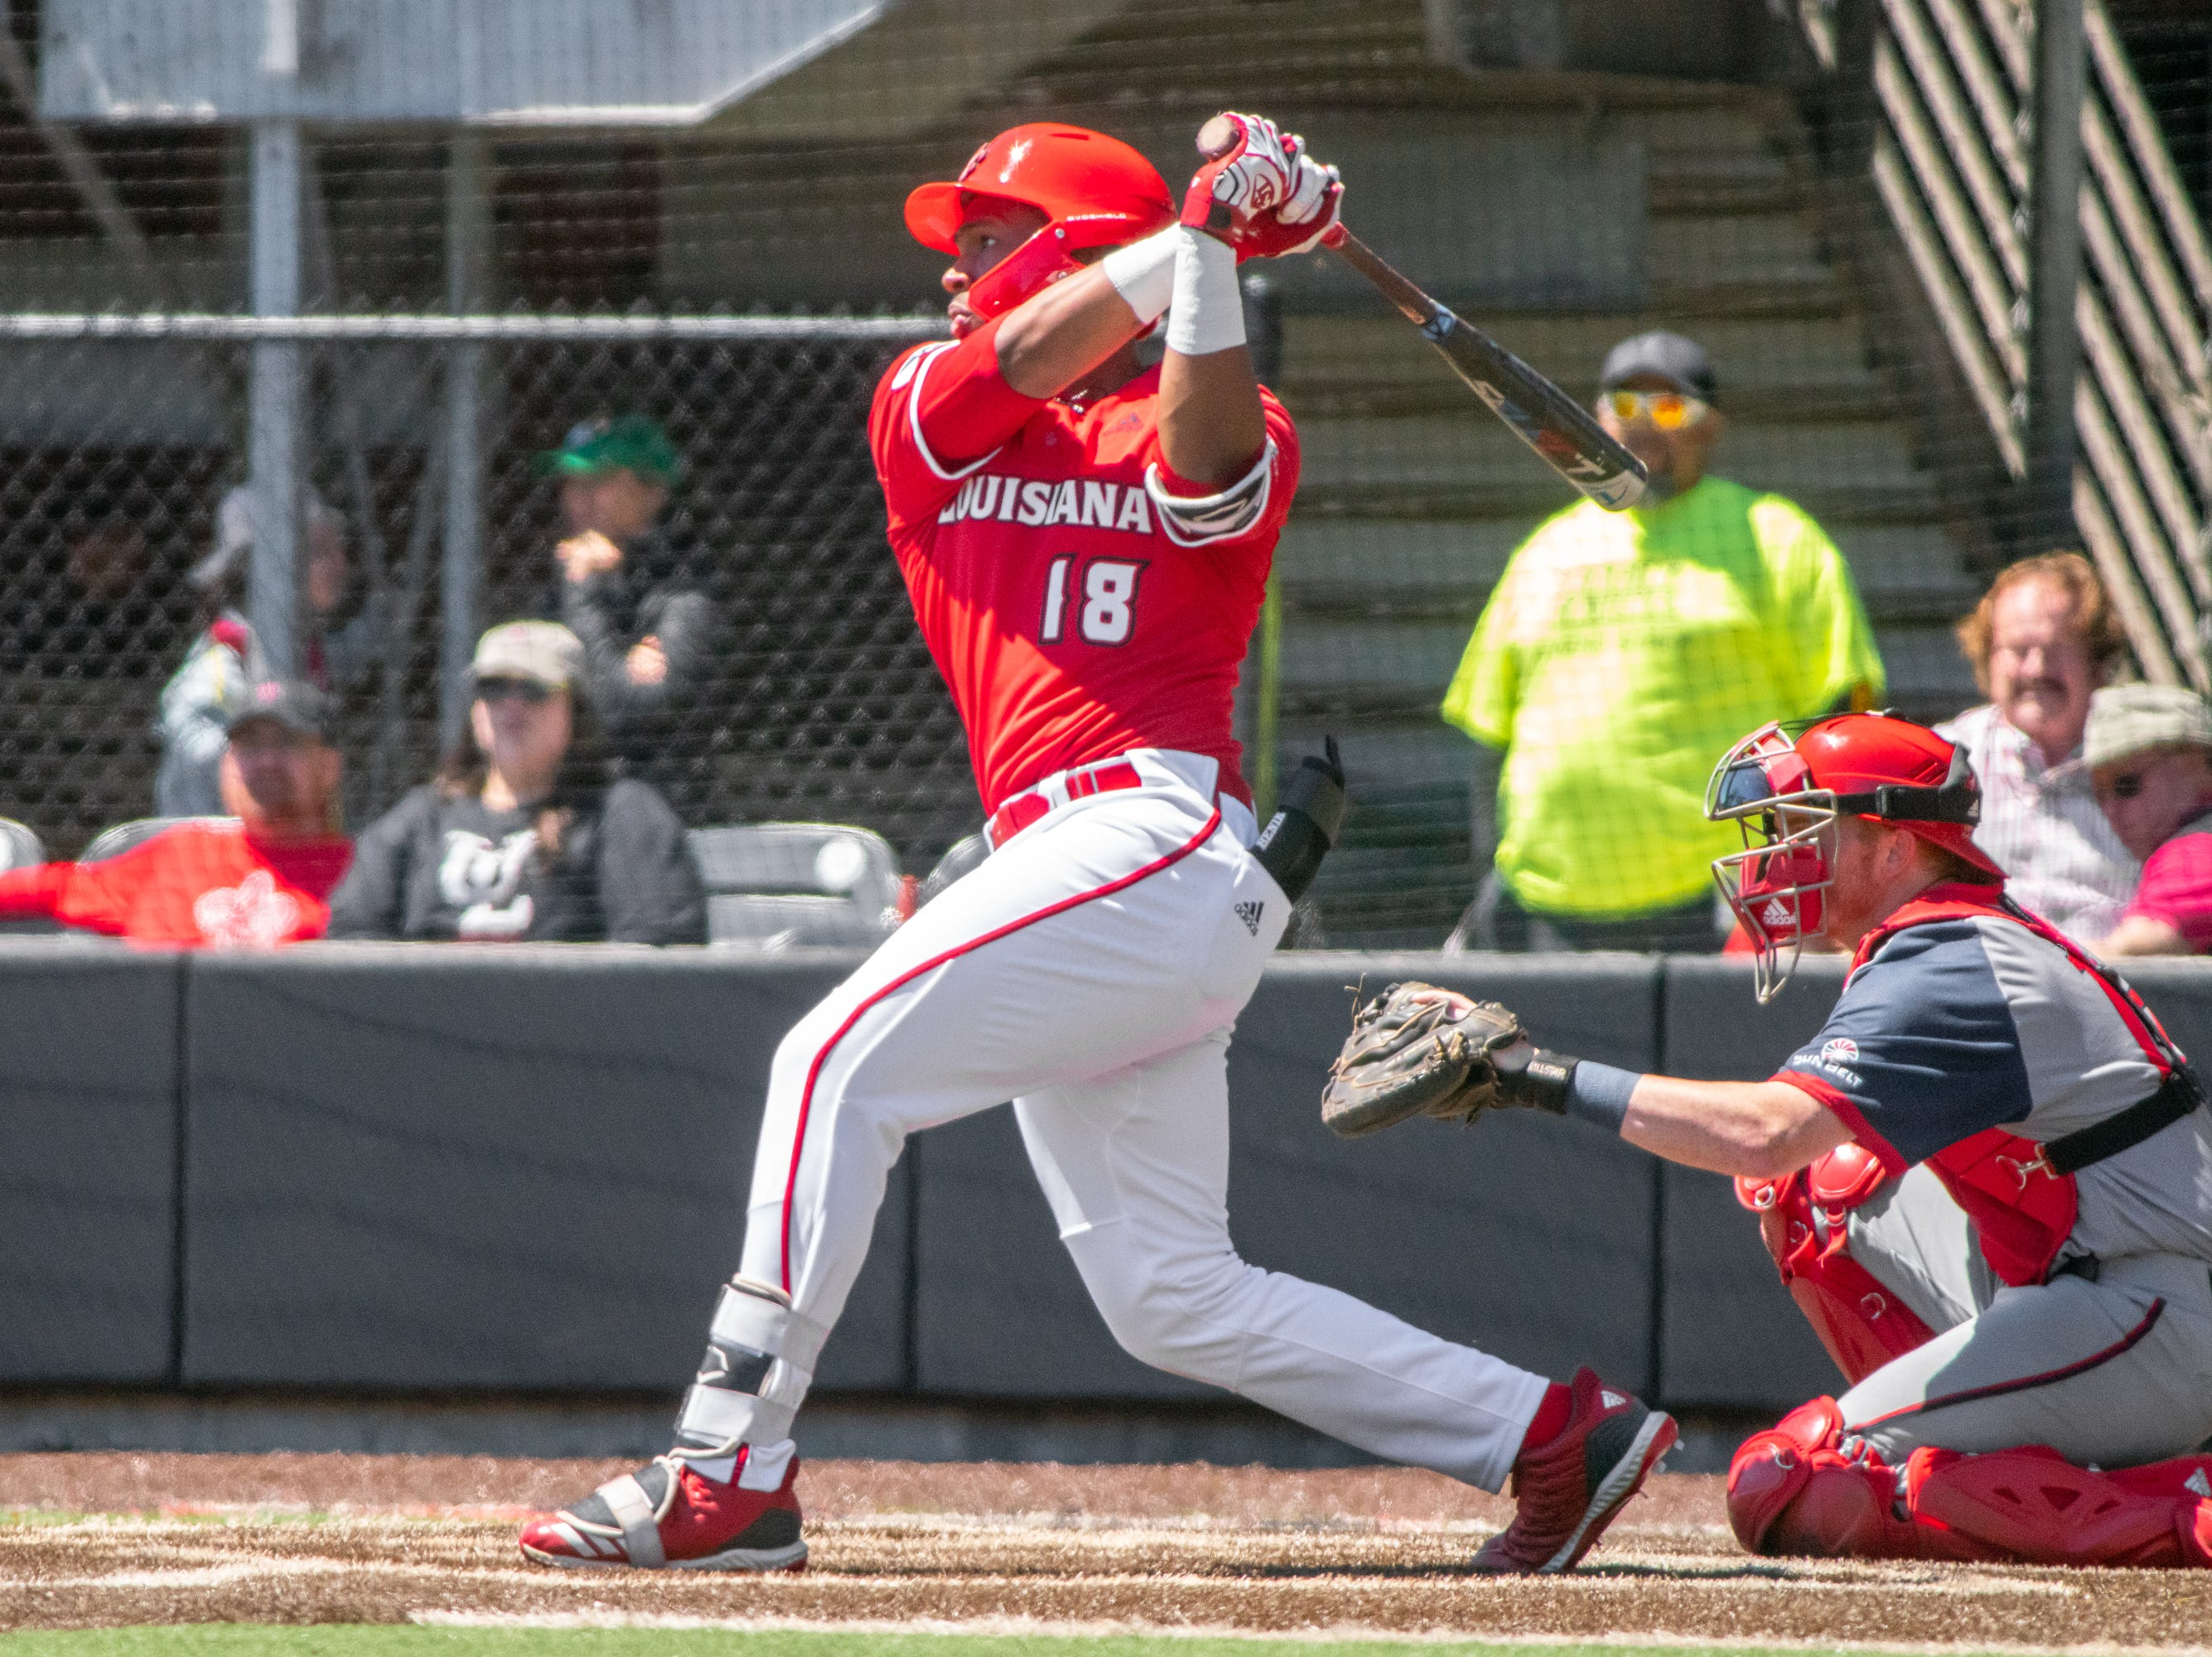 """UL's Tremaine Spears after the swing as the Ragin' Cajuns take on the South Alabama Jaguars at M.L. """"Tigue"""" Moore Field on Sunday, April 14, 2019."""